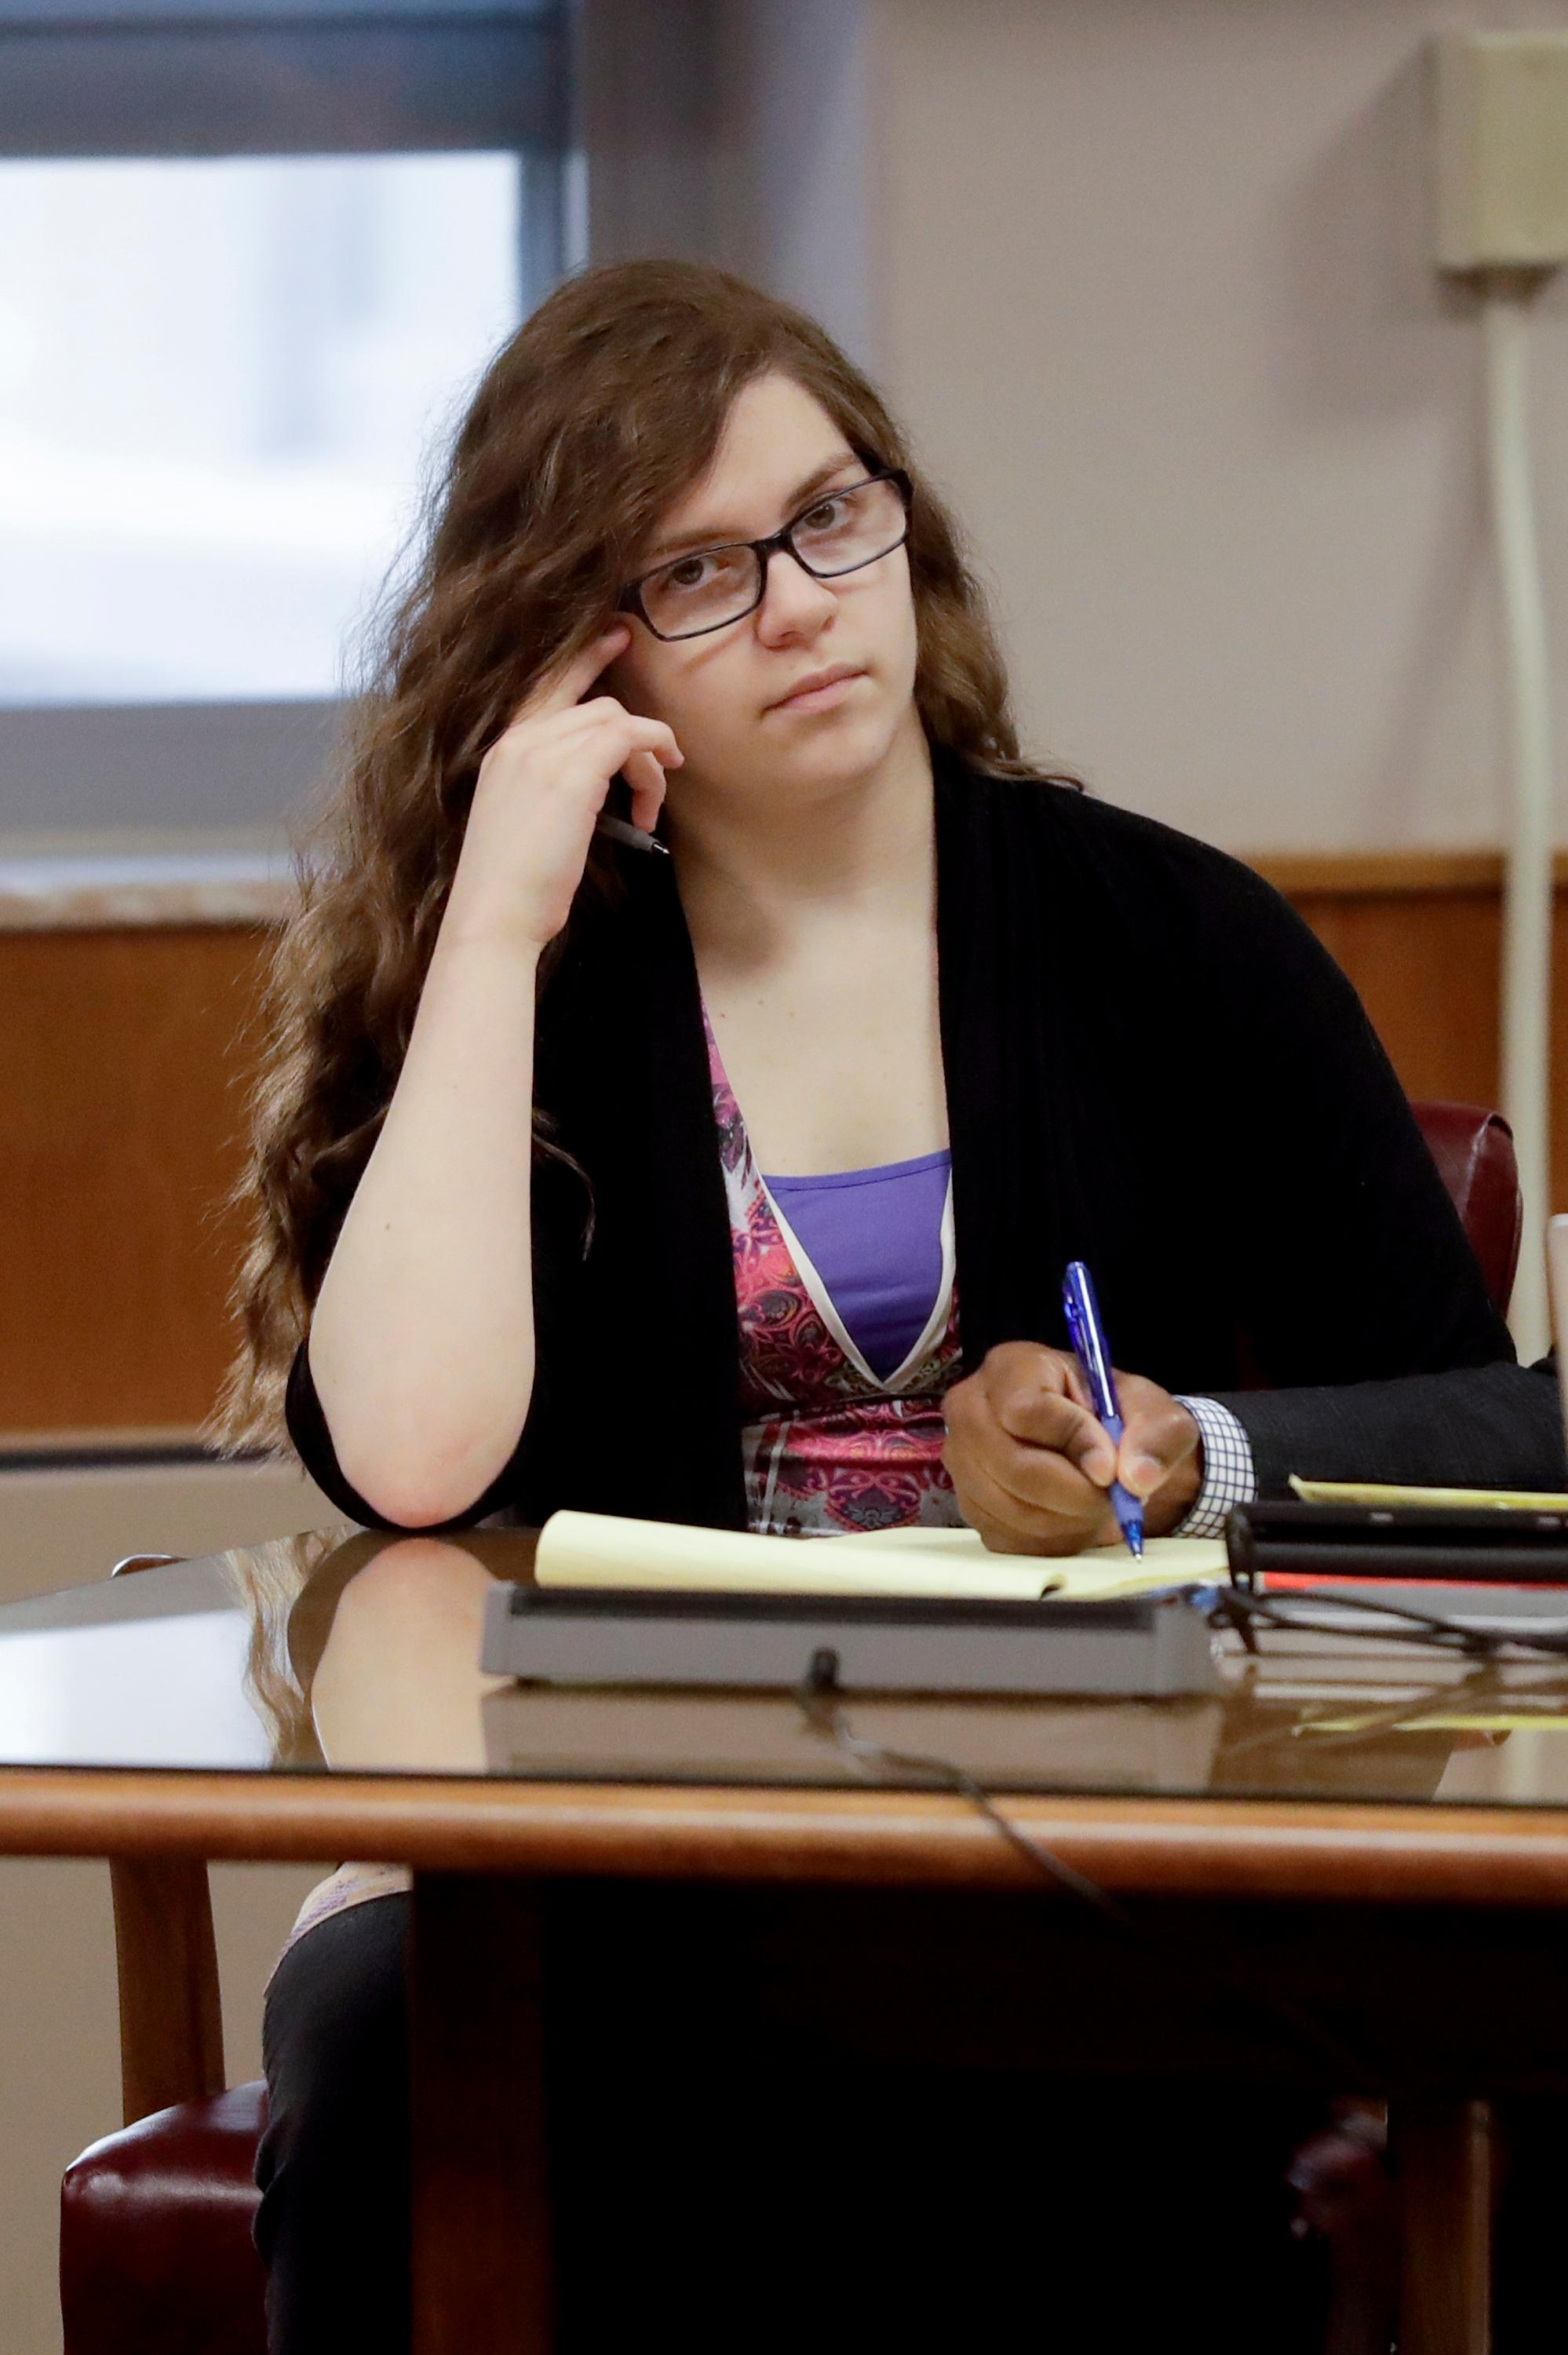 Anissa Weier listens during the jury selection in the trial to determine her competency at Waukesha County Courthouse Monday, Sept 11, 2017, in Waukesha, Wis.  (AP Photo/Morry Gash, Pool)